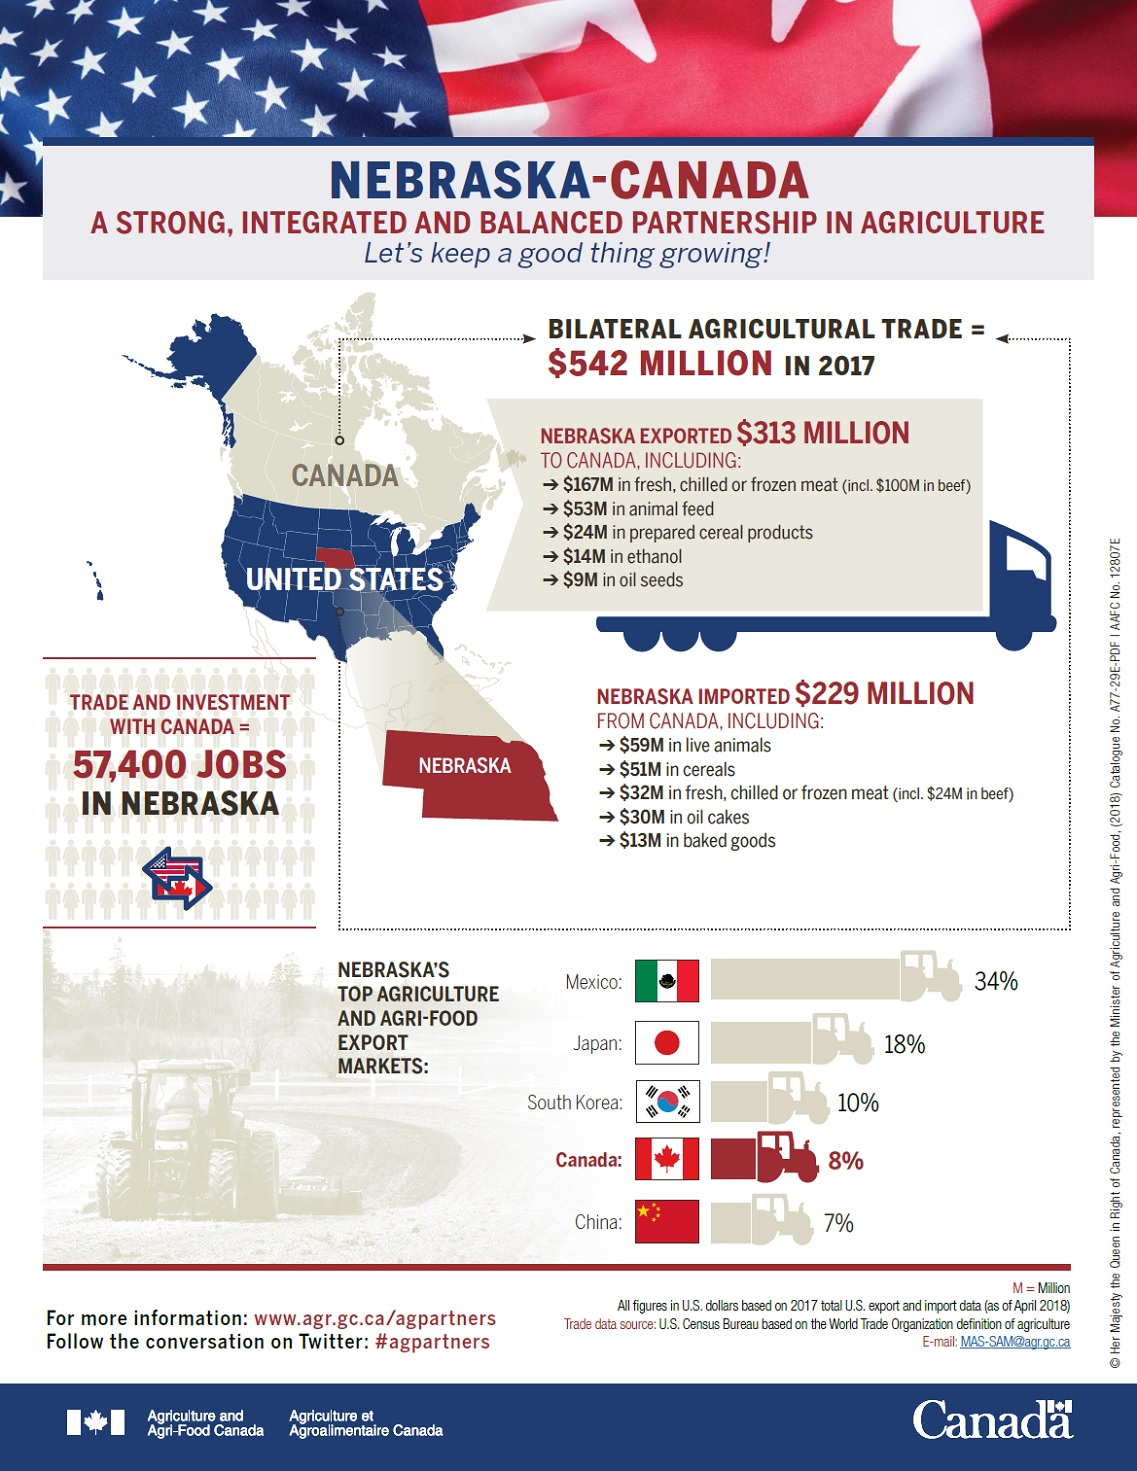 Nebraska-Canada agricultural trade - Agriculture and Agri-Food